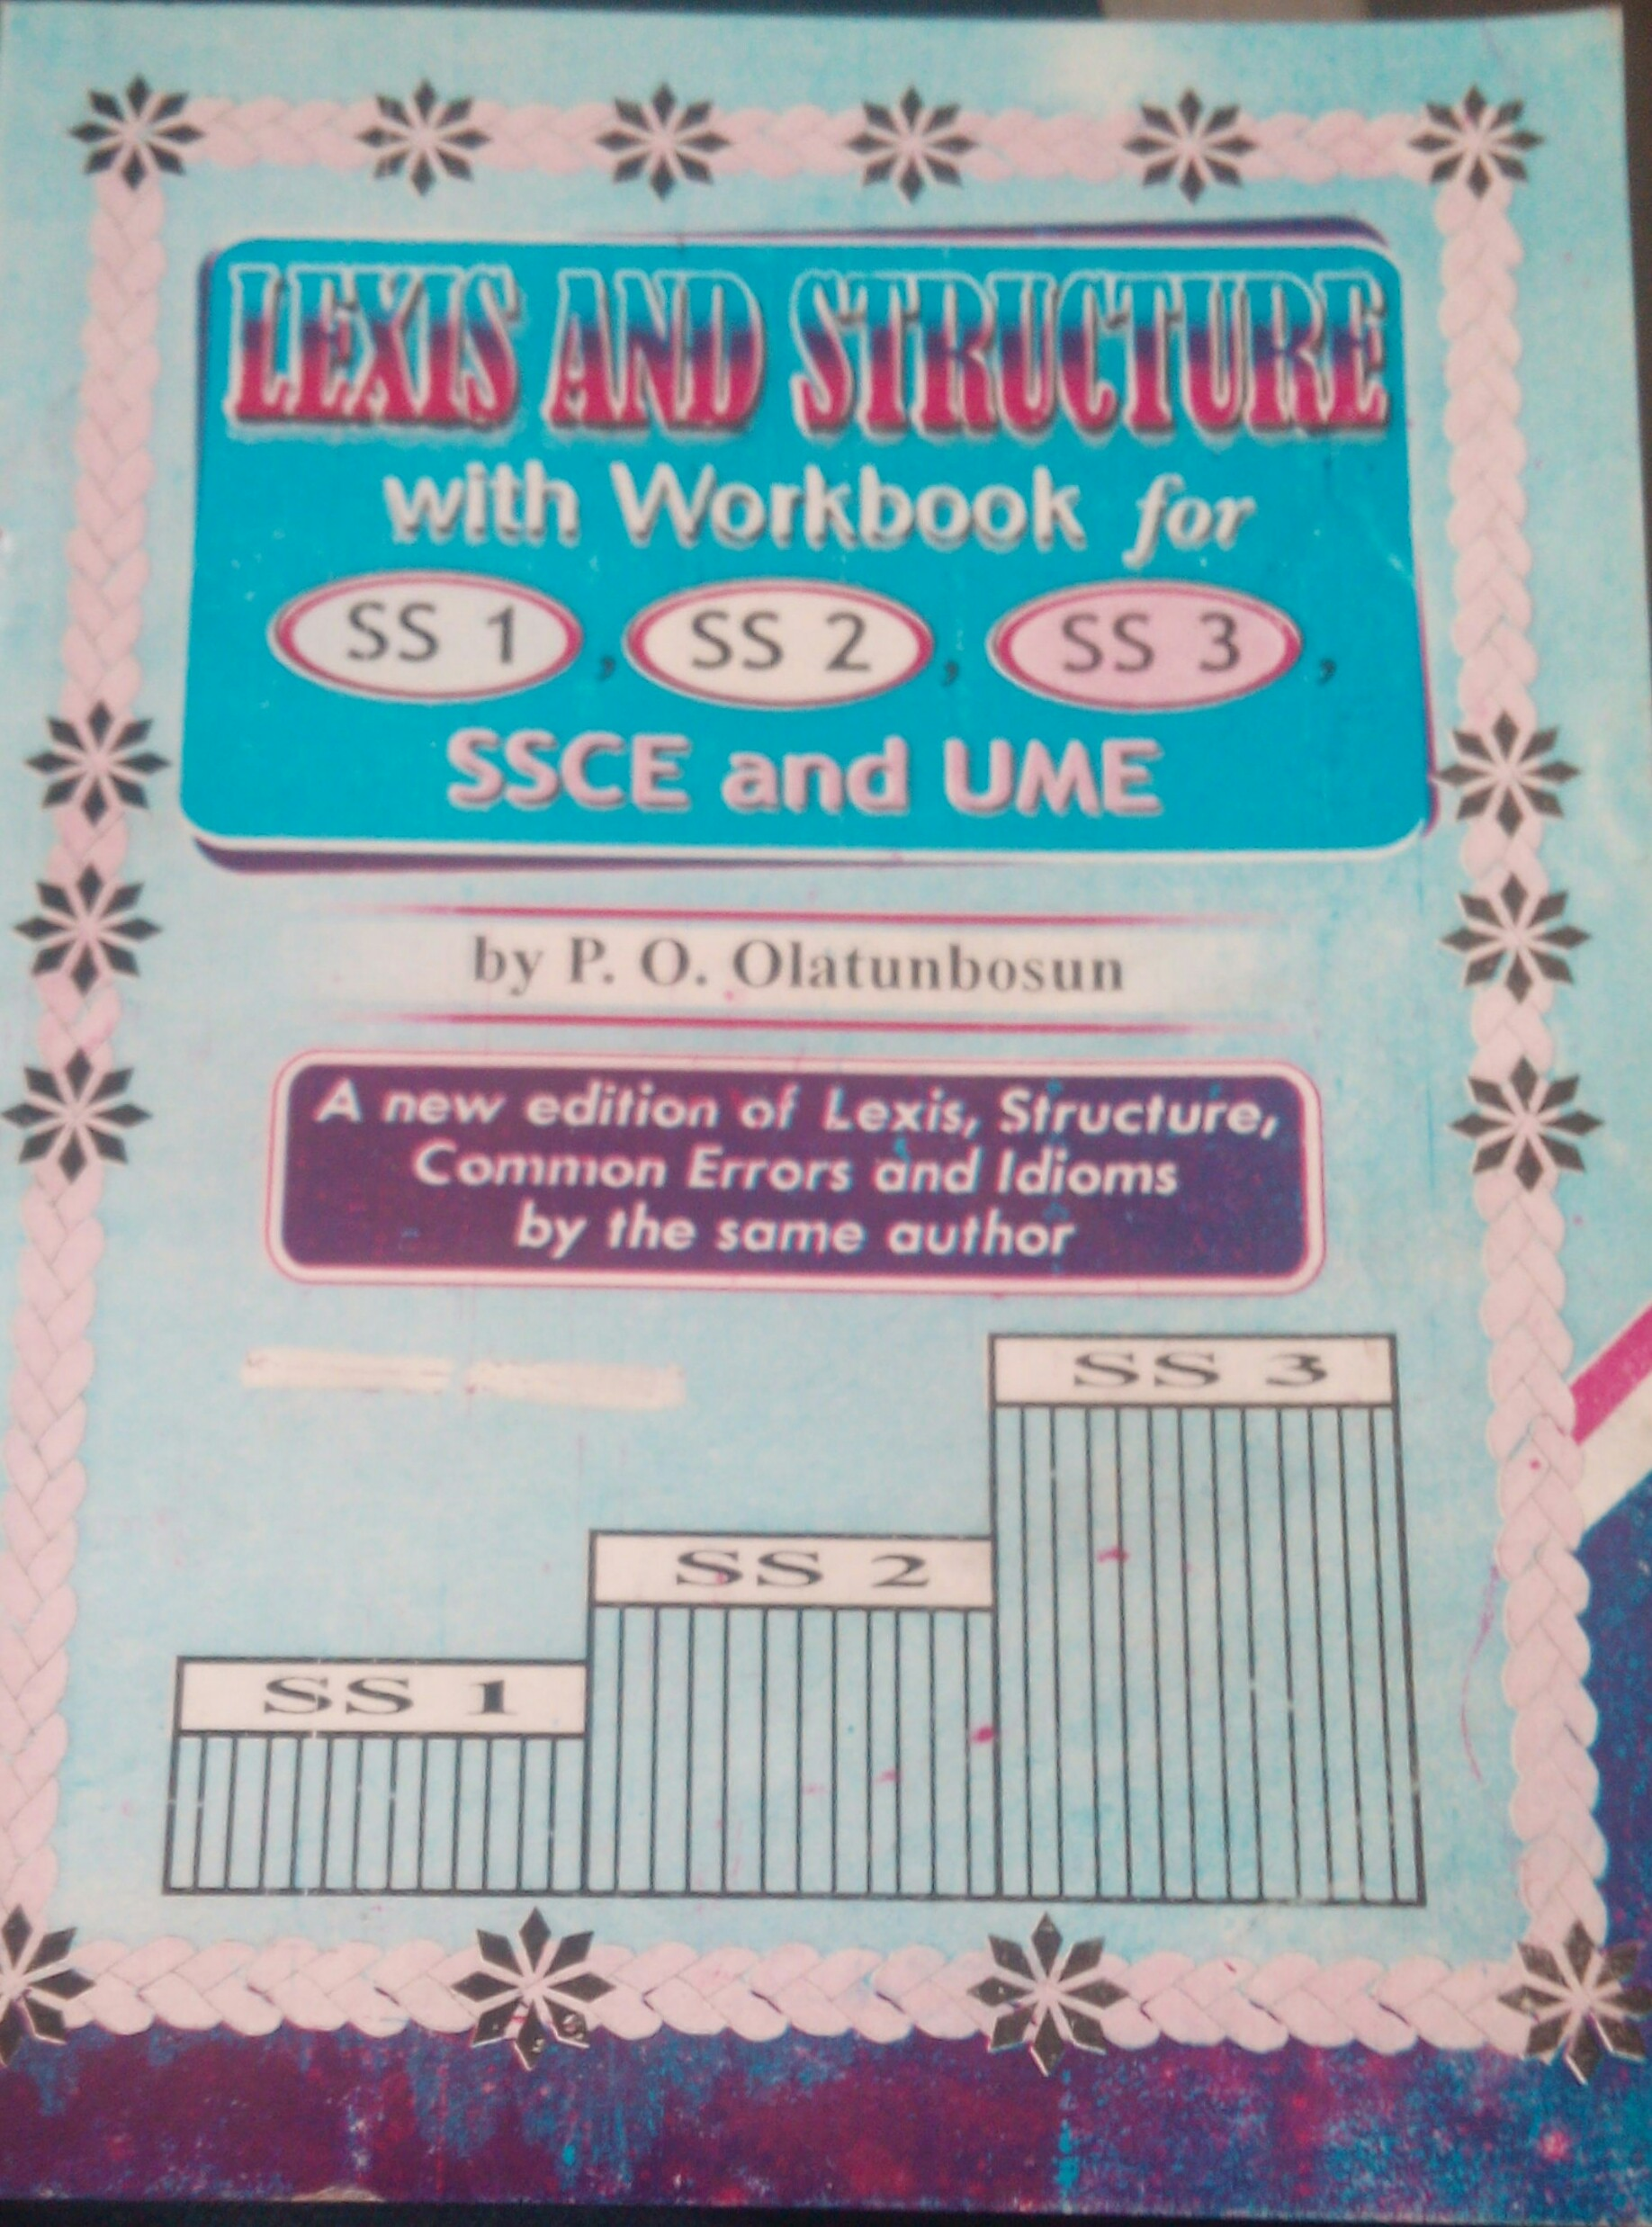 Lexis and Structure Workbook for SSCE and UTME